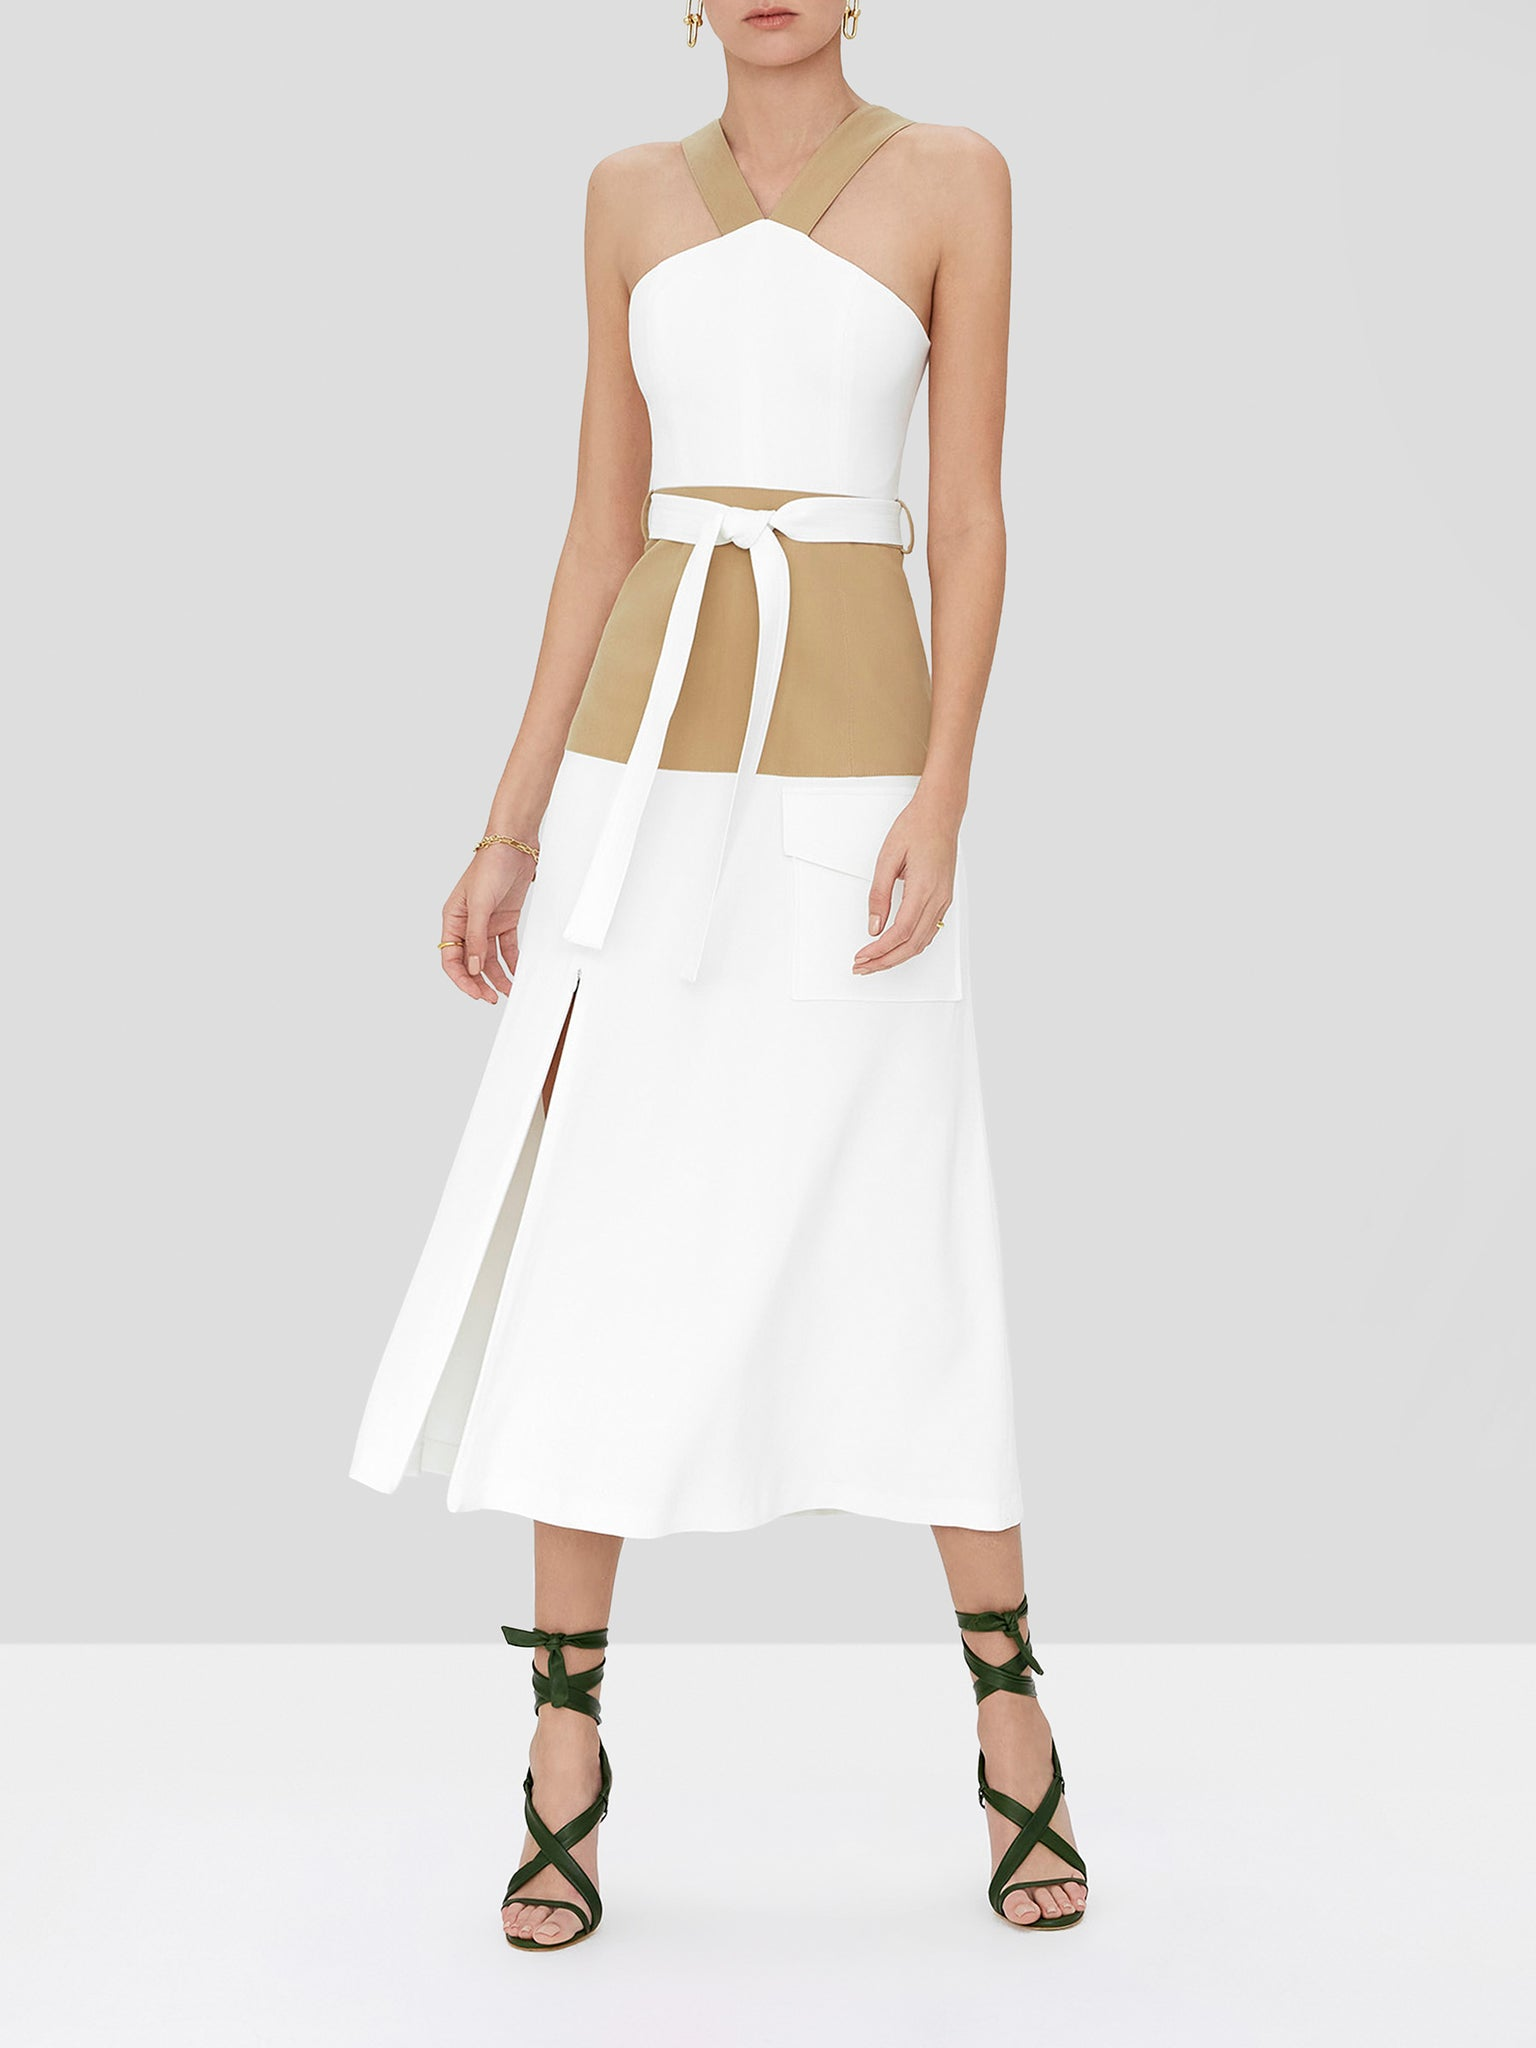 erina dress in tan/ white